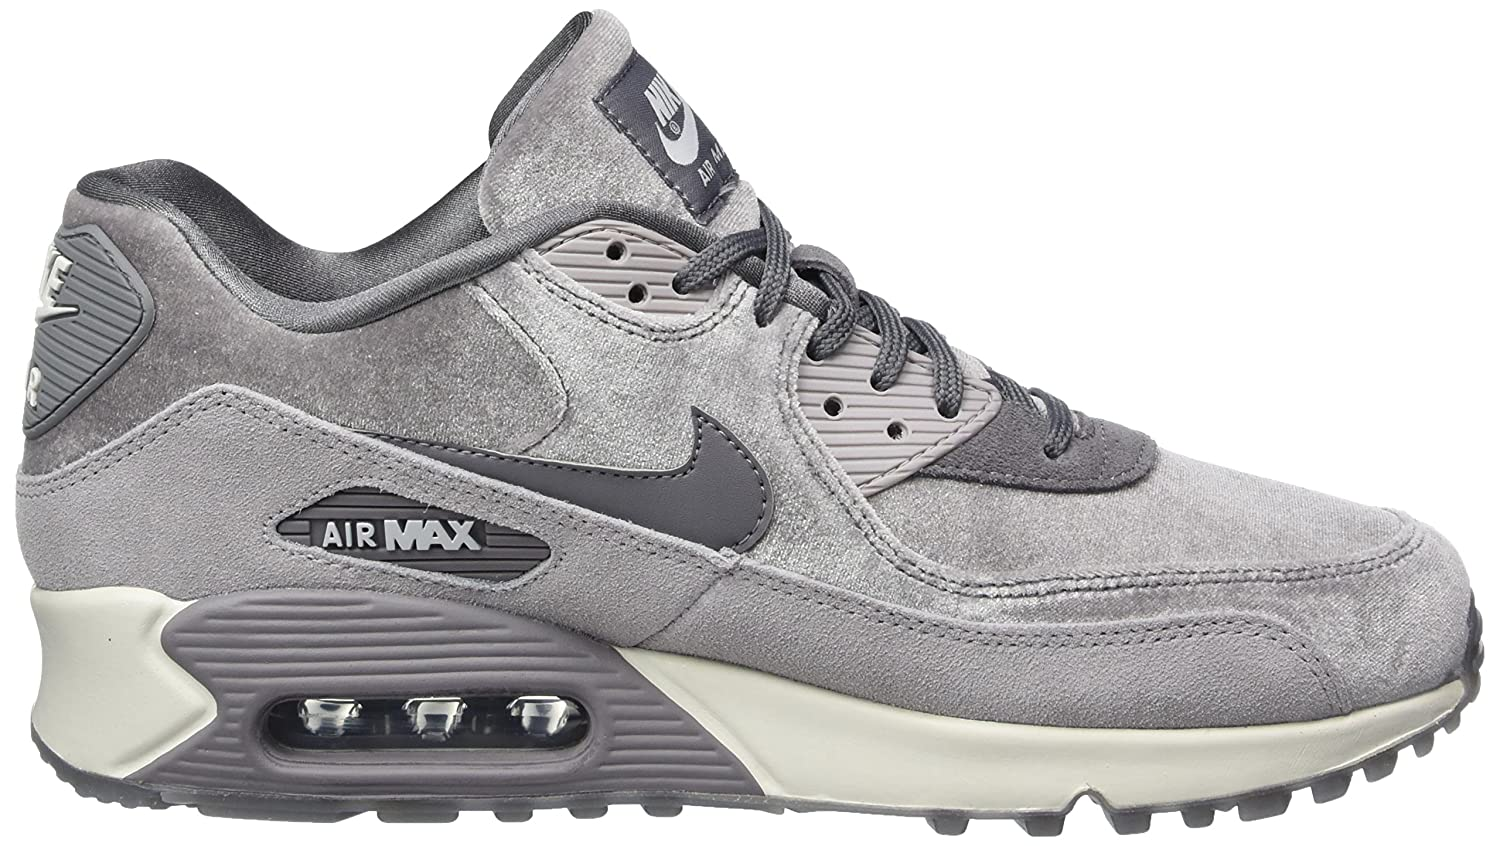 NIKE Women's Air Max 90 LX Running Shoes B077SB47GG 7 B(M) US|Gunsmoke/Gunsmoke